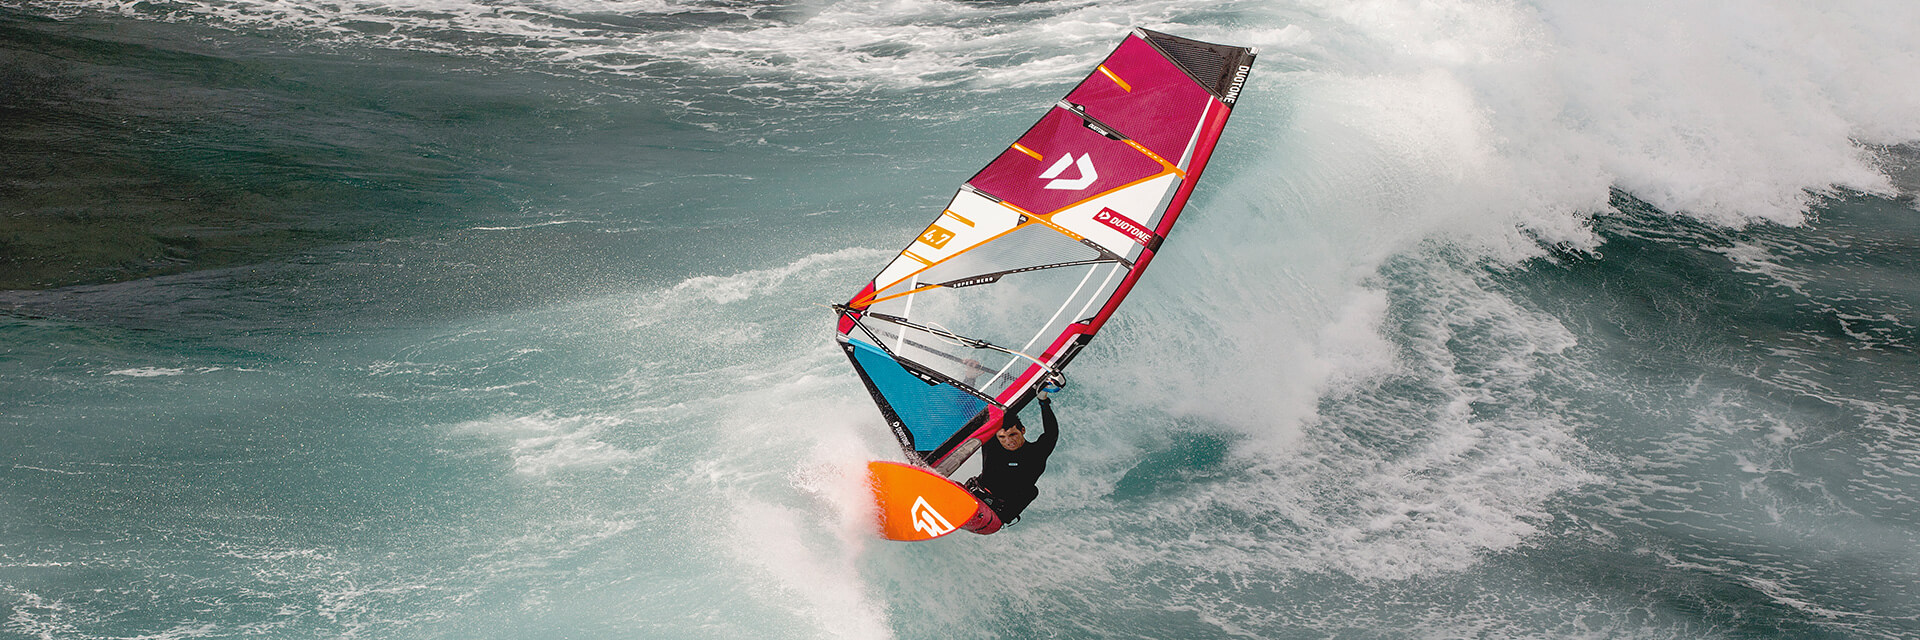 Warranty Windsurfing